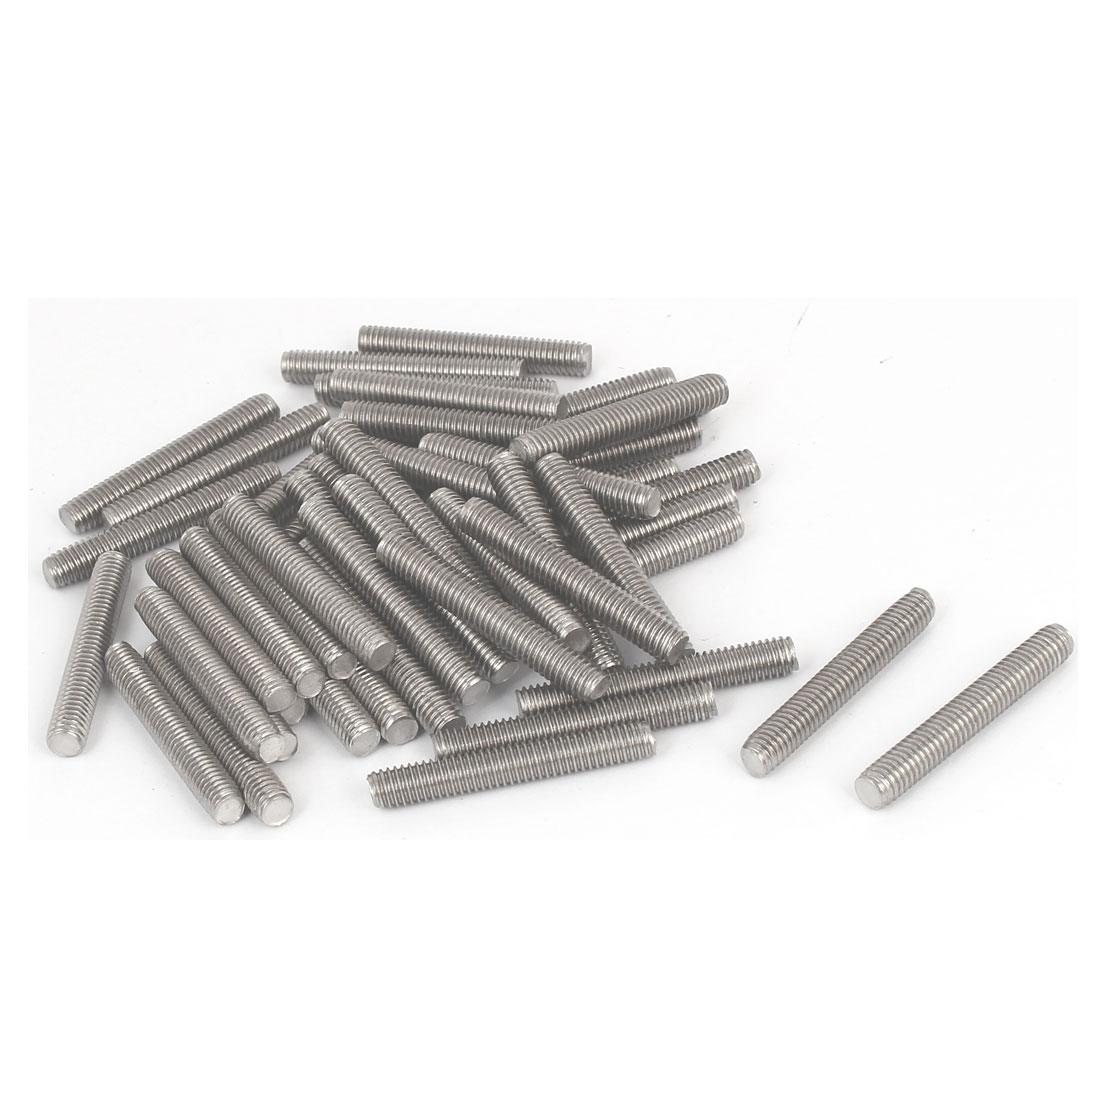 M6-x-40mm-Male-Thread-304-Stainless-Steel-Fully-Threaded-Rods-Bar-Studs-50-Pcs